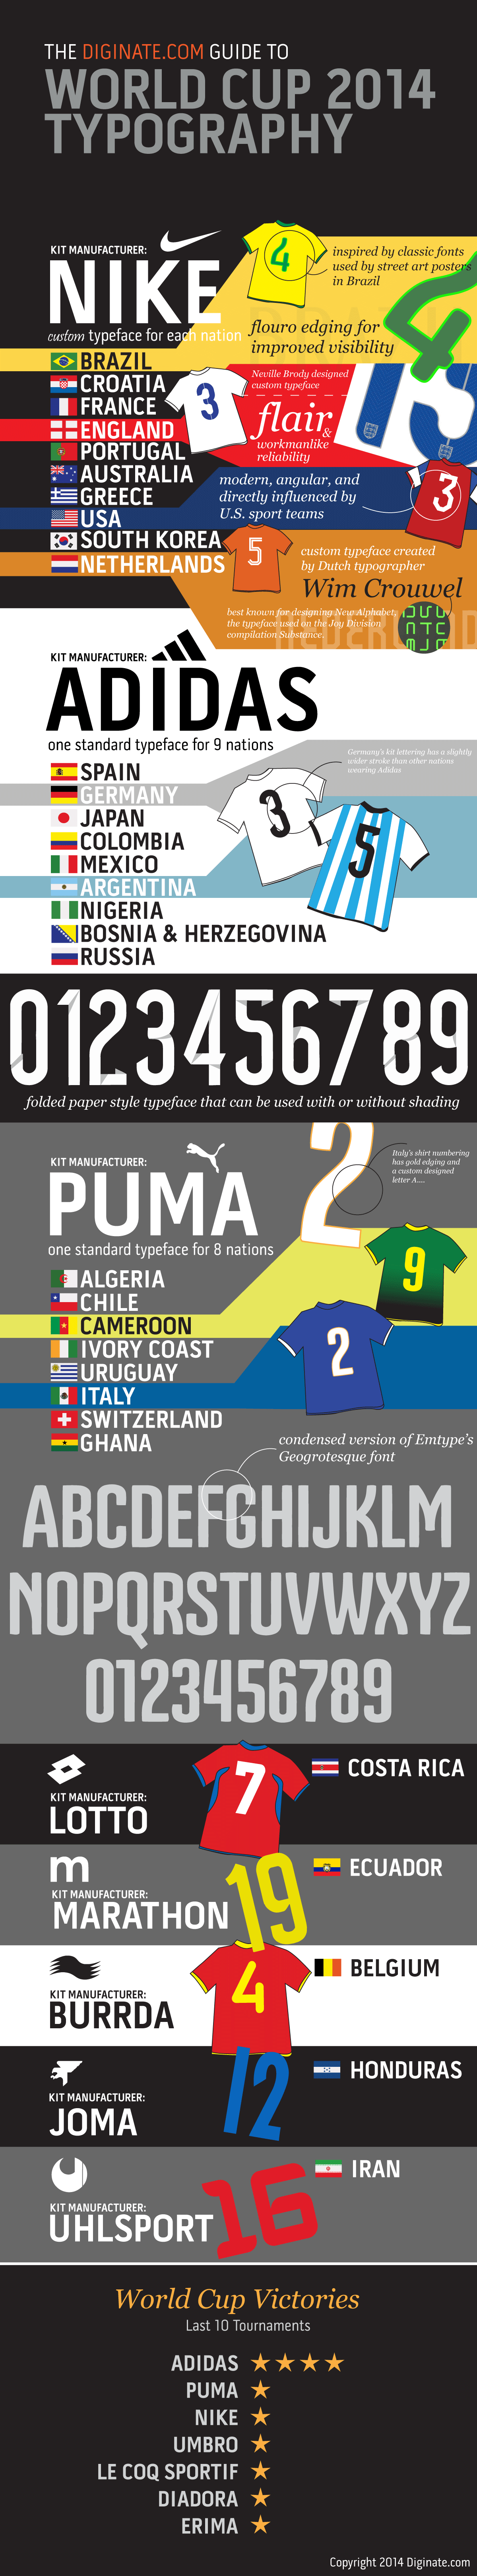 World cup 2014 font and typefaces